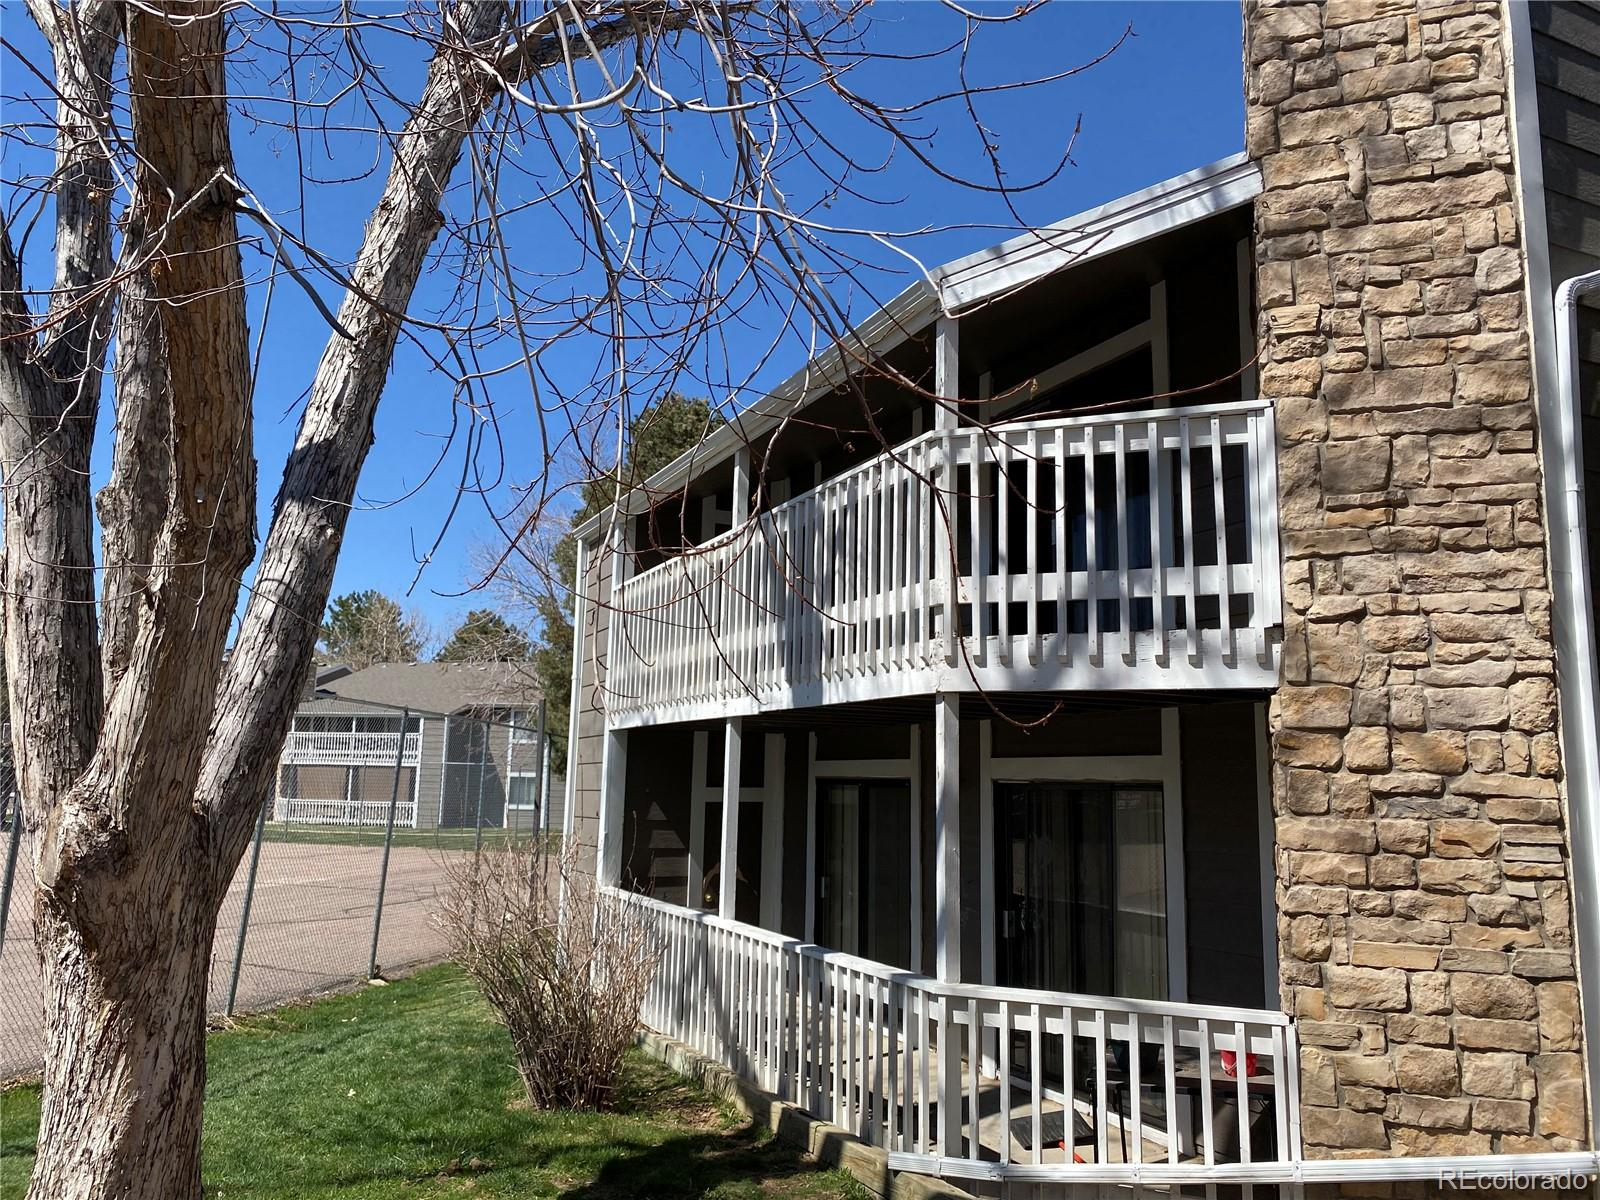 AS-IS 3 BEDROOM CONDOMINIUM, 2ND FLOOR UNIT WITH NOONE ABOVE, LARGE LIVING ROOM WITH STONE FIREPLACE, COVERED DECK IS ACCESSED FROM LIVING ROOM AND FROM ONE BEDROOM, ROOMY WITH 1177 SQUARE FEET, , COMMUNITY OUTDOOR POOL FOR SUMMER RECREATION, TWO RESERVED PARKING SPACES, CONDO IS IN OK CONDITION.  Condo is priced below market value. this is to allow new owners to remodel the unit to their likings. Washer and dryer are not included, which reflects in listing price. Take advantage of the savings to build your dream unit.